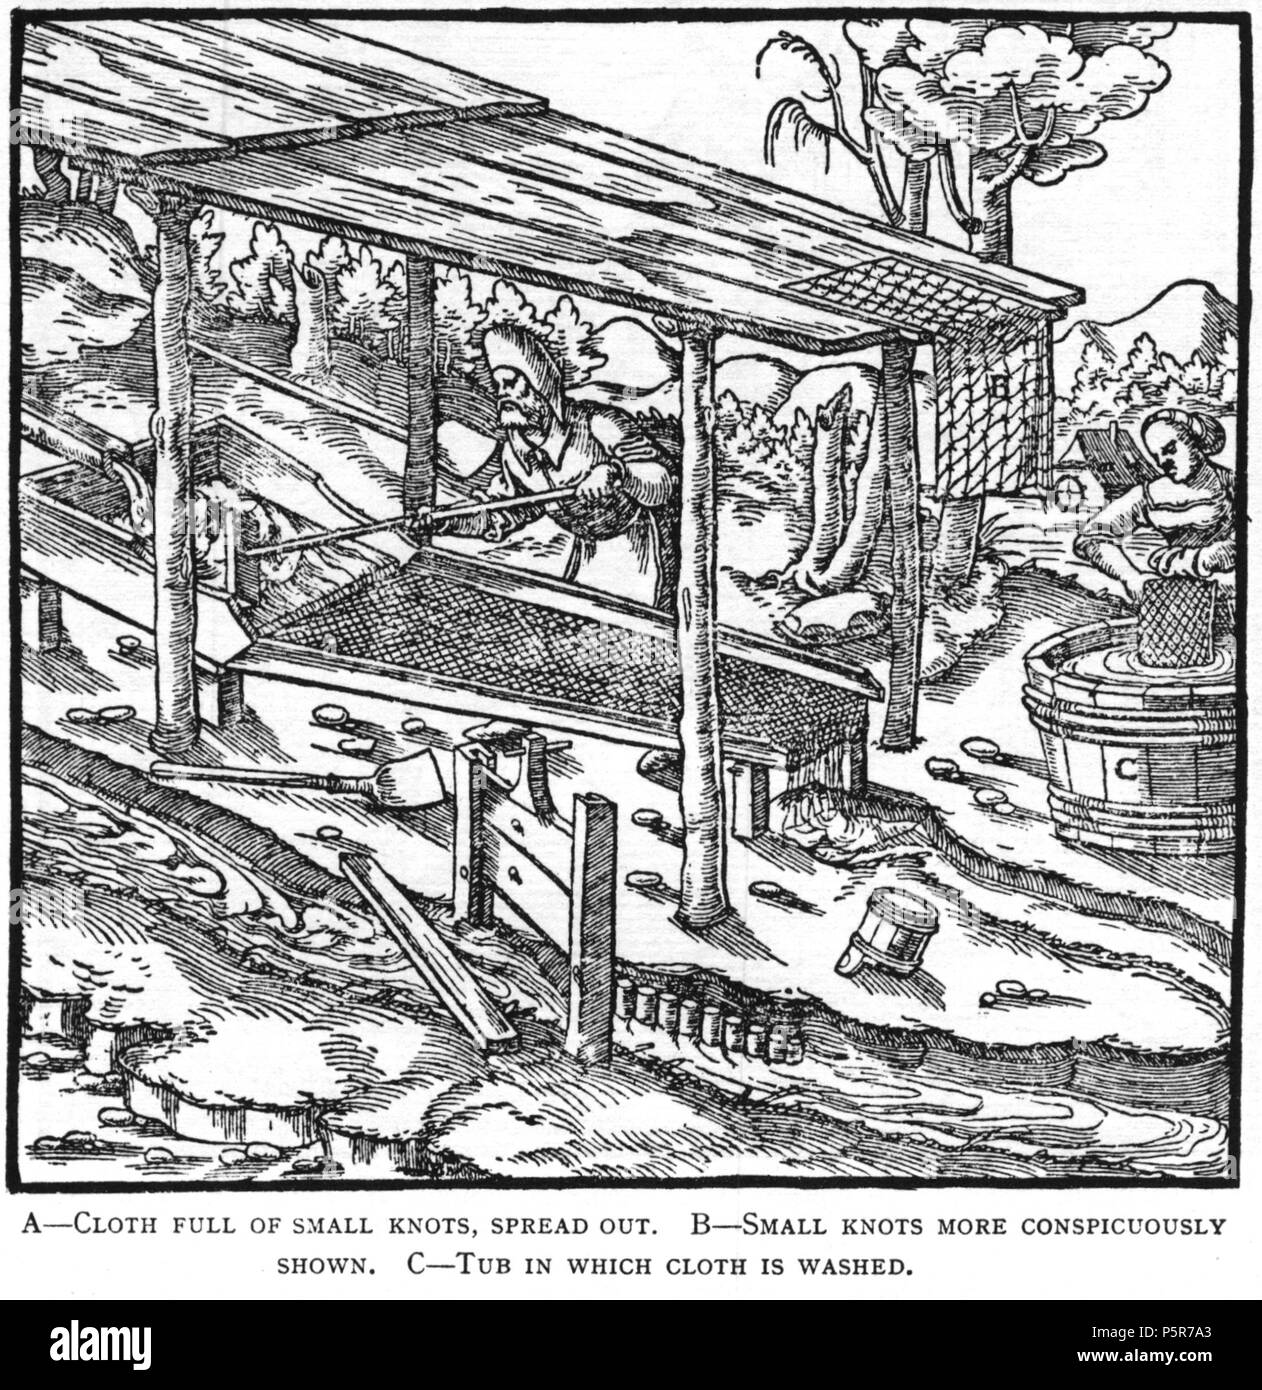 N/A. Woodcut illustration from De re metallica by Georgius Agricola. This is a 300dpi scan from the 1950 Dover edition of the 1913 Hoover translation of the 1556 reference. The Dover edition has slightly smaller size prints than the Hoover (which is a rare book). The woodcuts were recreated for the 1913 printing. Filenames (except for the title page) indicate the chapter (2, 3, 5, etc.) followed by the sequential number of the illustration. 2 May 2005, 07:13:22. TCO (talk) 223 Book8-48 - Stock Image